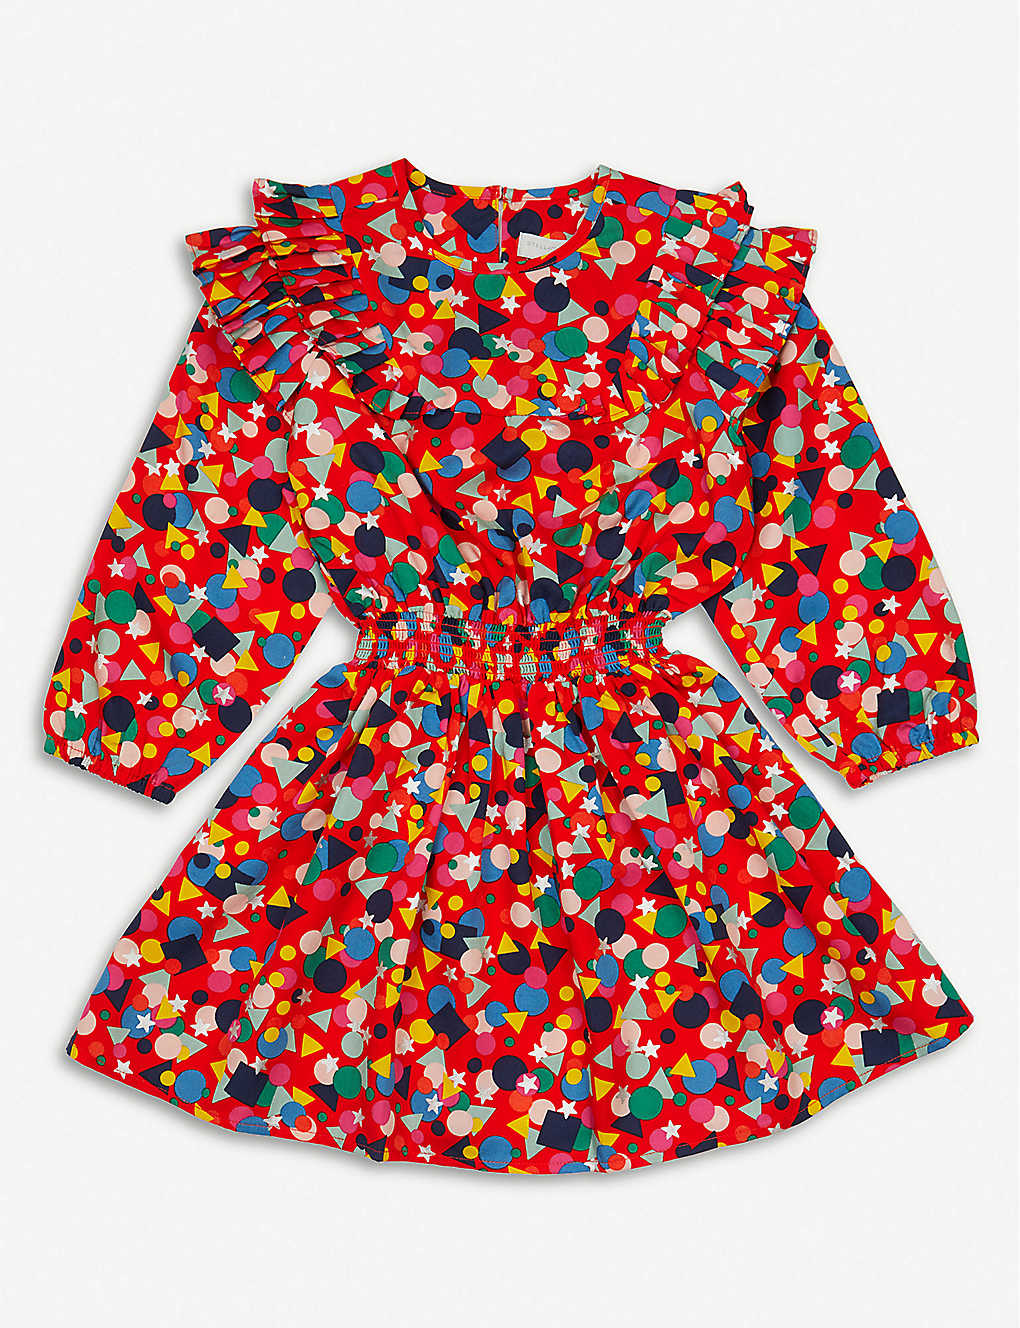 STELLA MCCARTNEY: Graphic-print lyocell dress 4-15 years